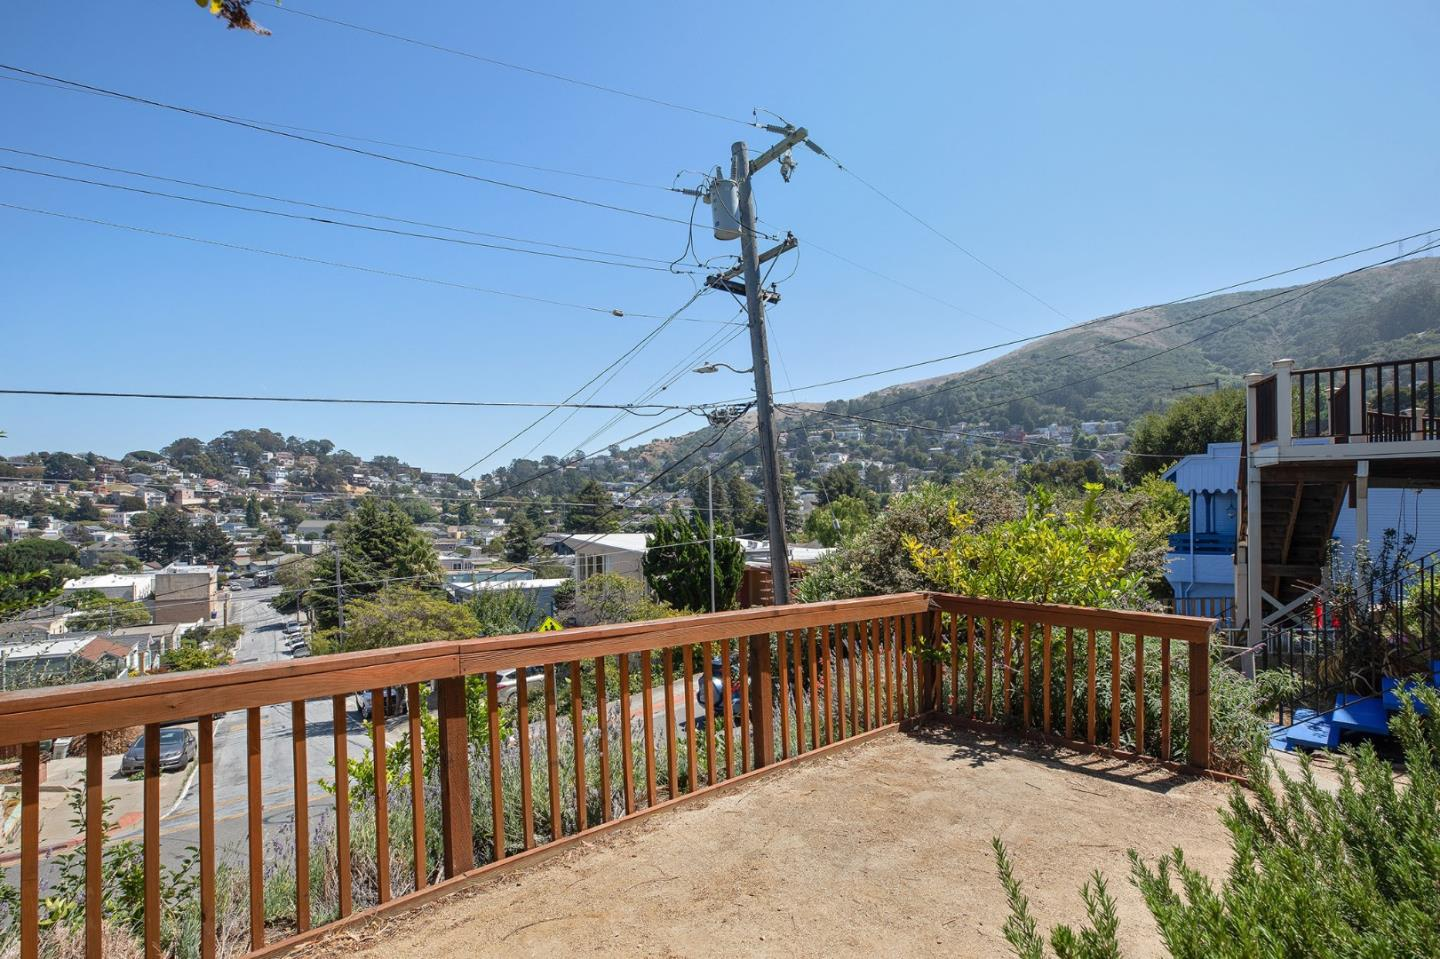 40 Solano Street Brisbane, CA 94005 - MLS #: ML81722322